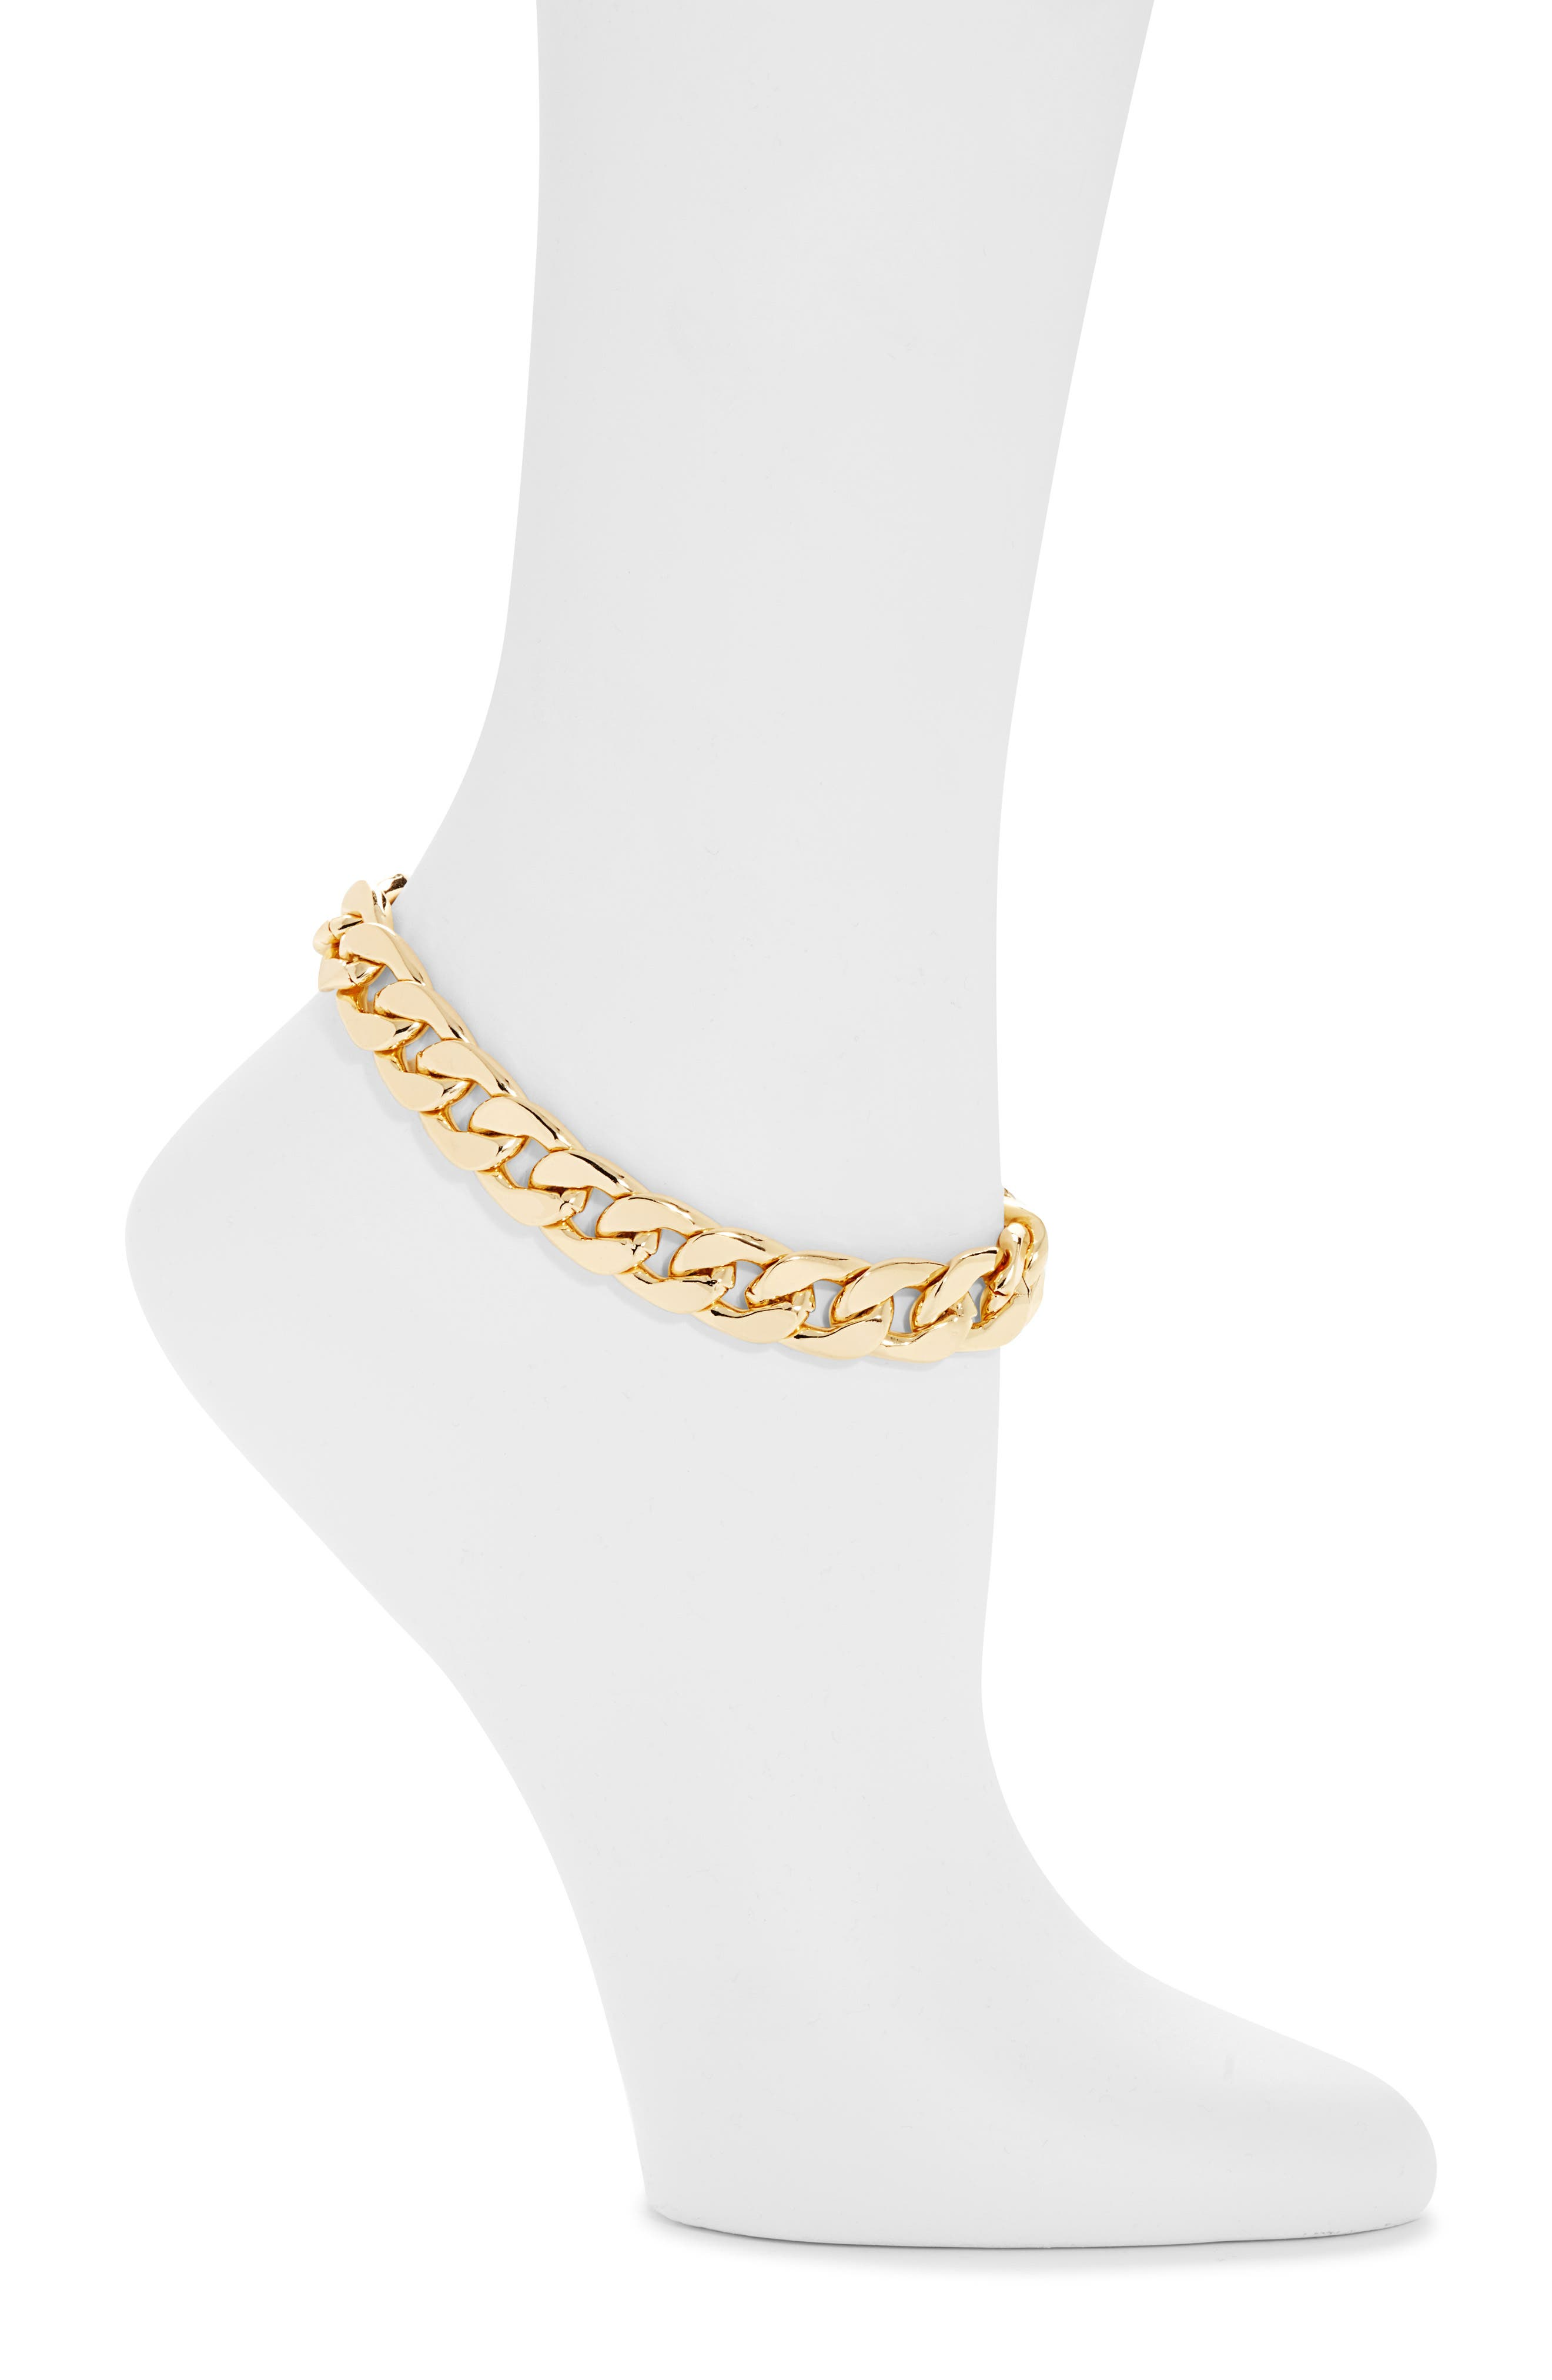 Ana Victoria Chain Link Anklet